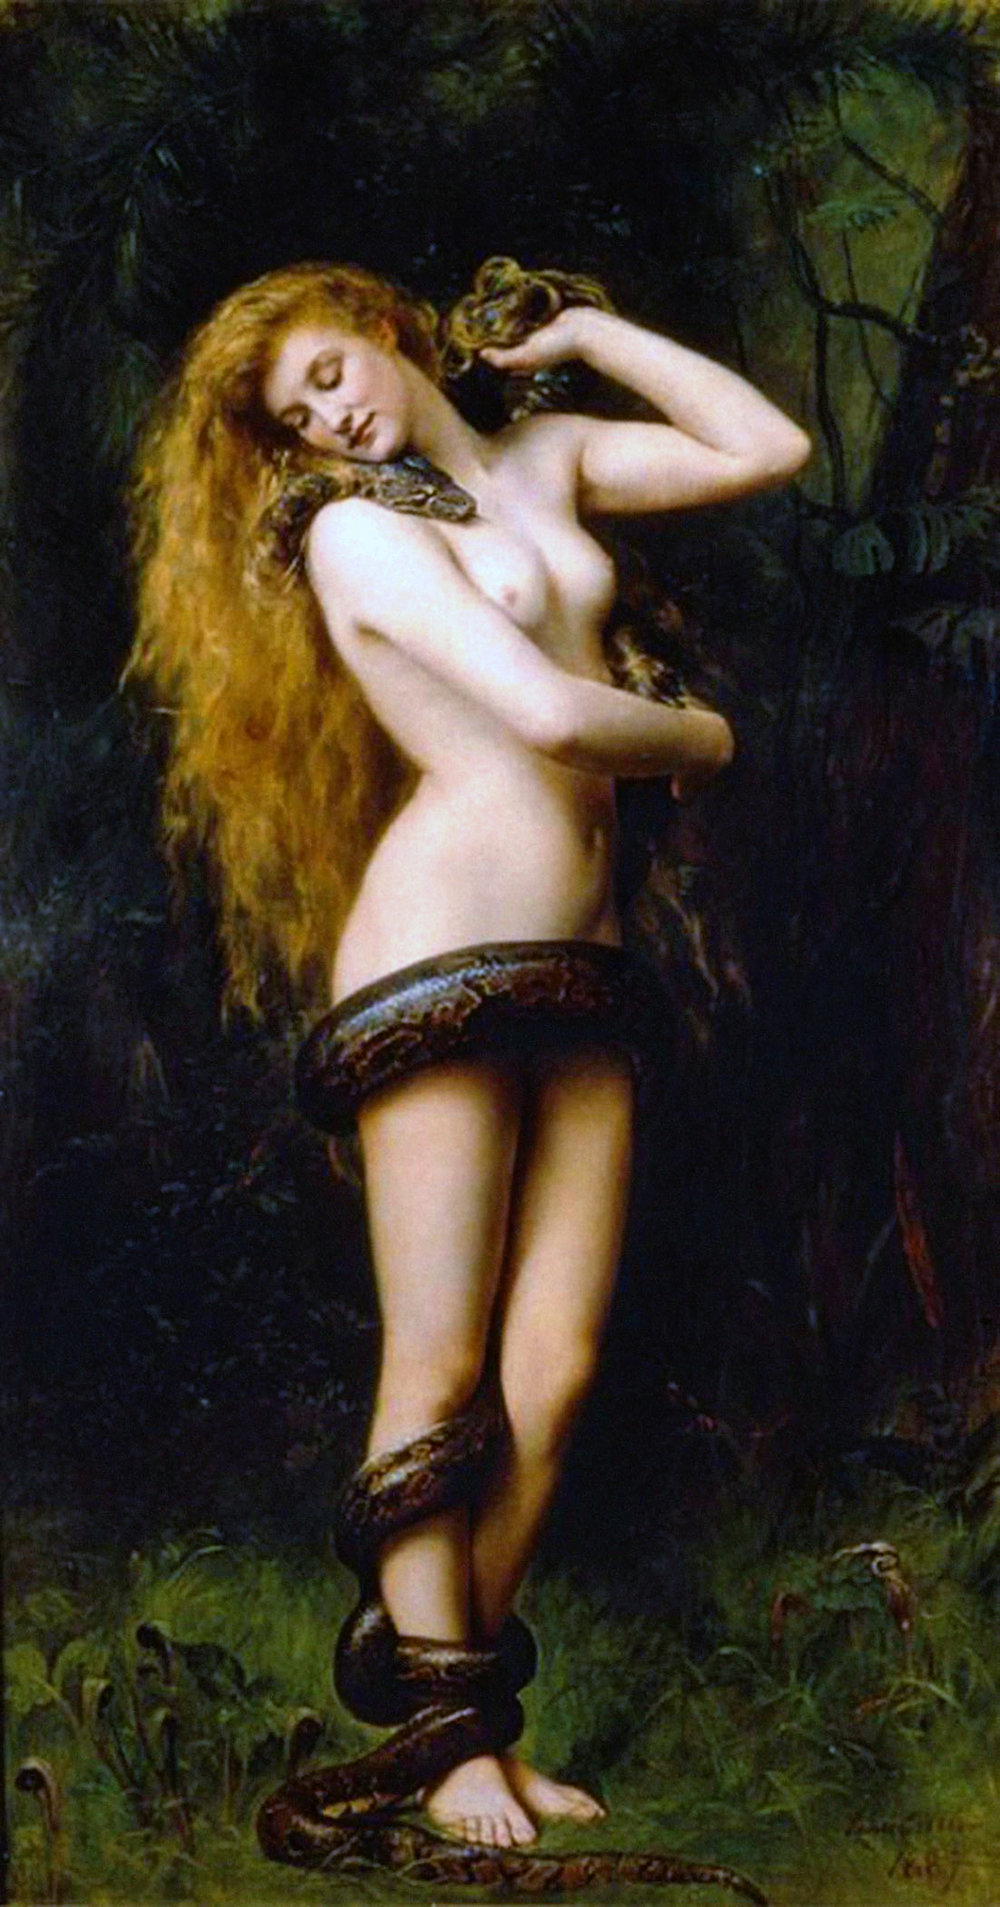 Lilith by John Collier, 1892